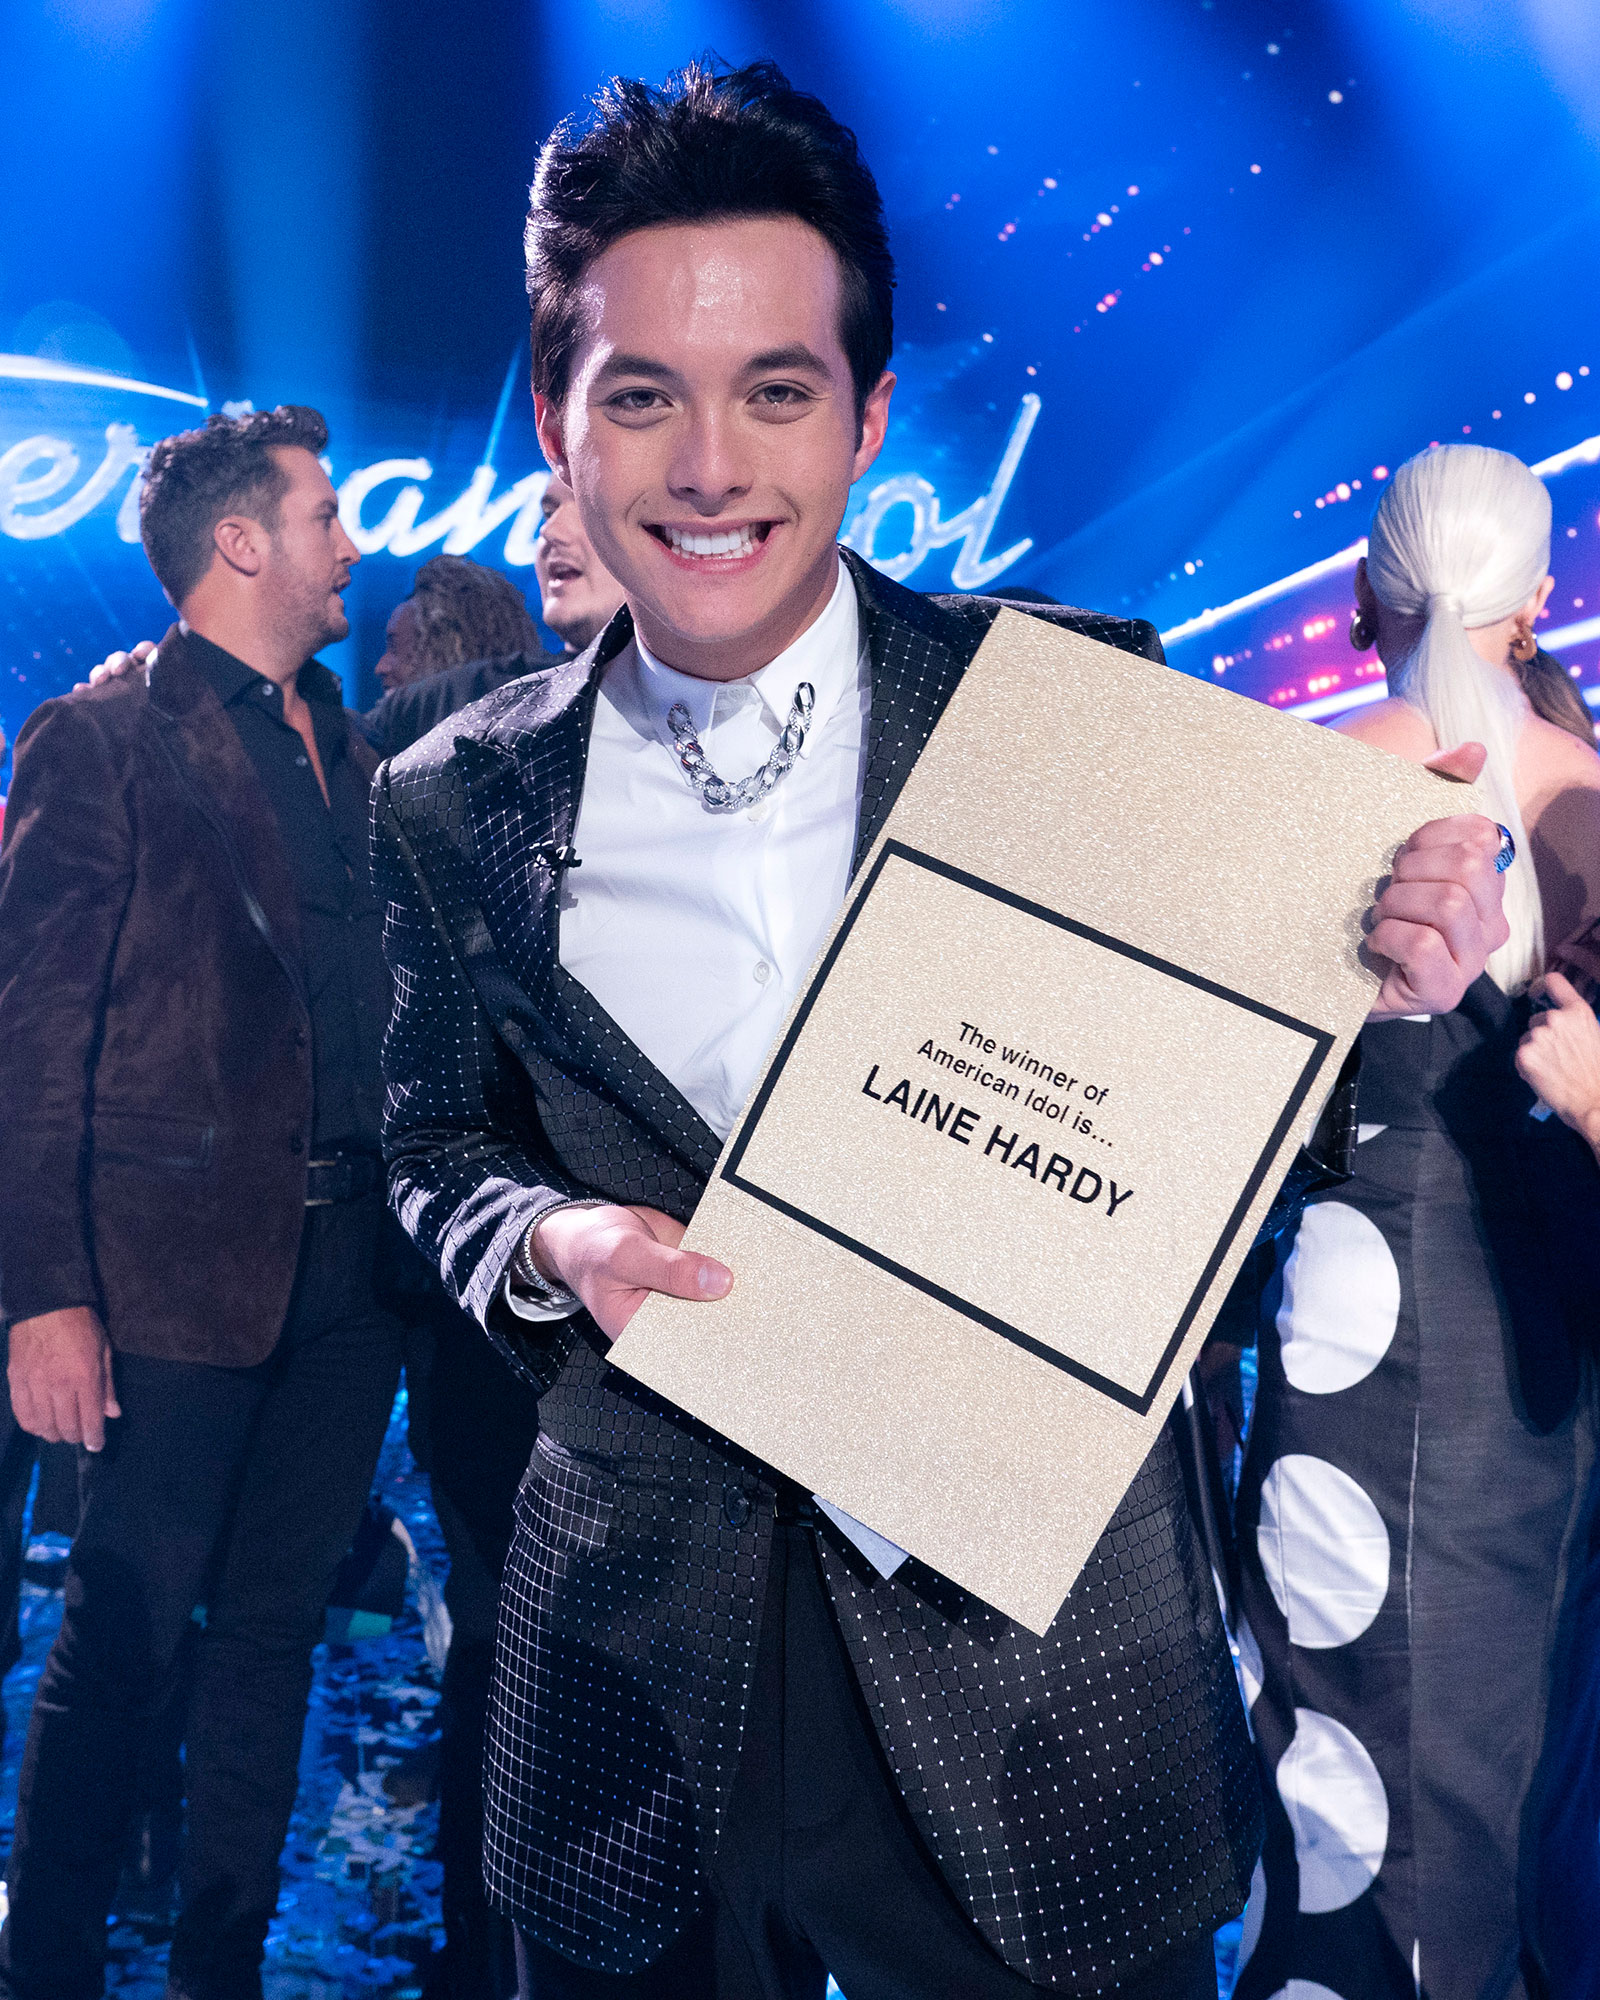 Laine Hardy Winner American Idol - Laine Hardy celebrates winning 'American Idol' on May 19, 2019.